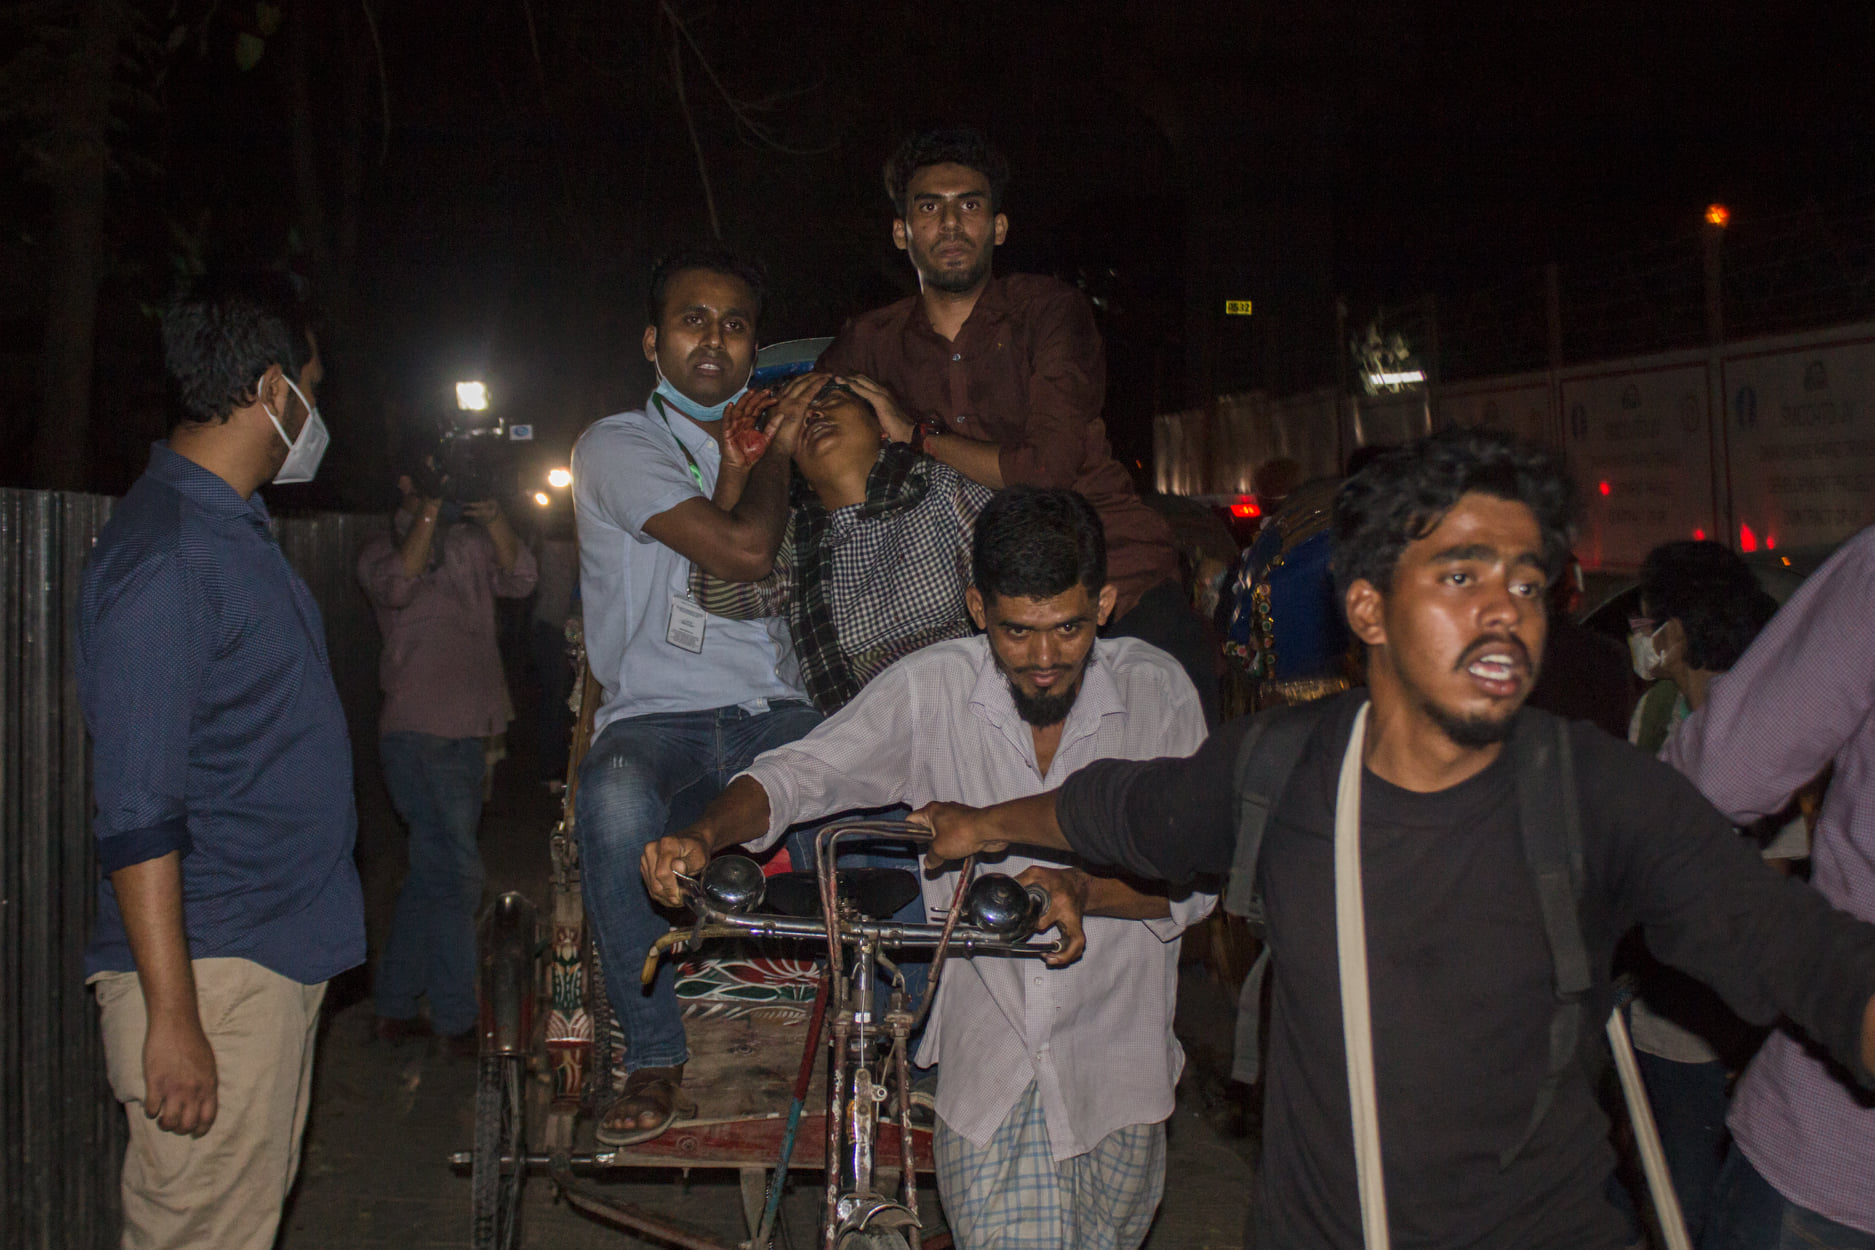 A protest in Dhaka, Bangladesh on February 26